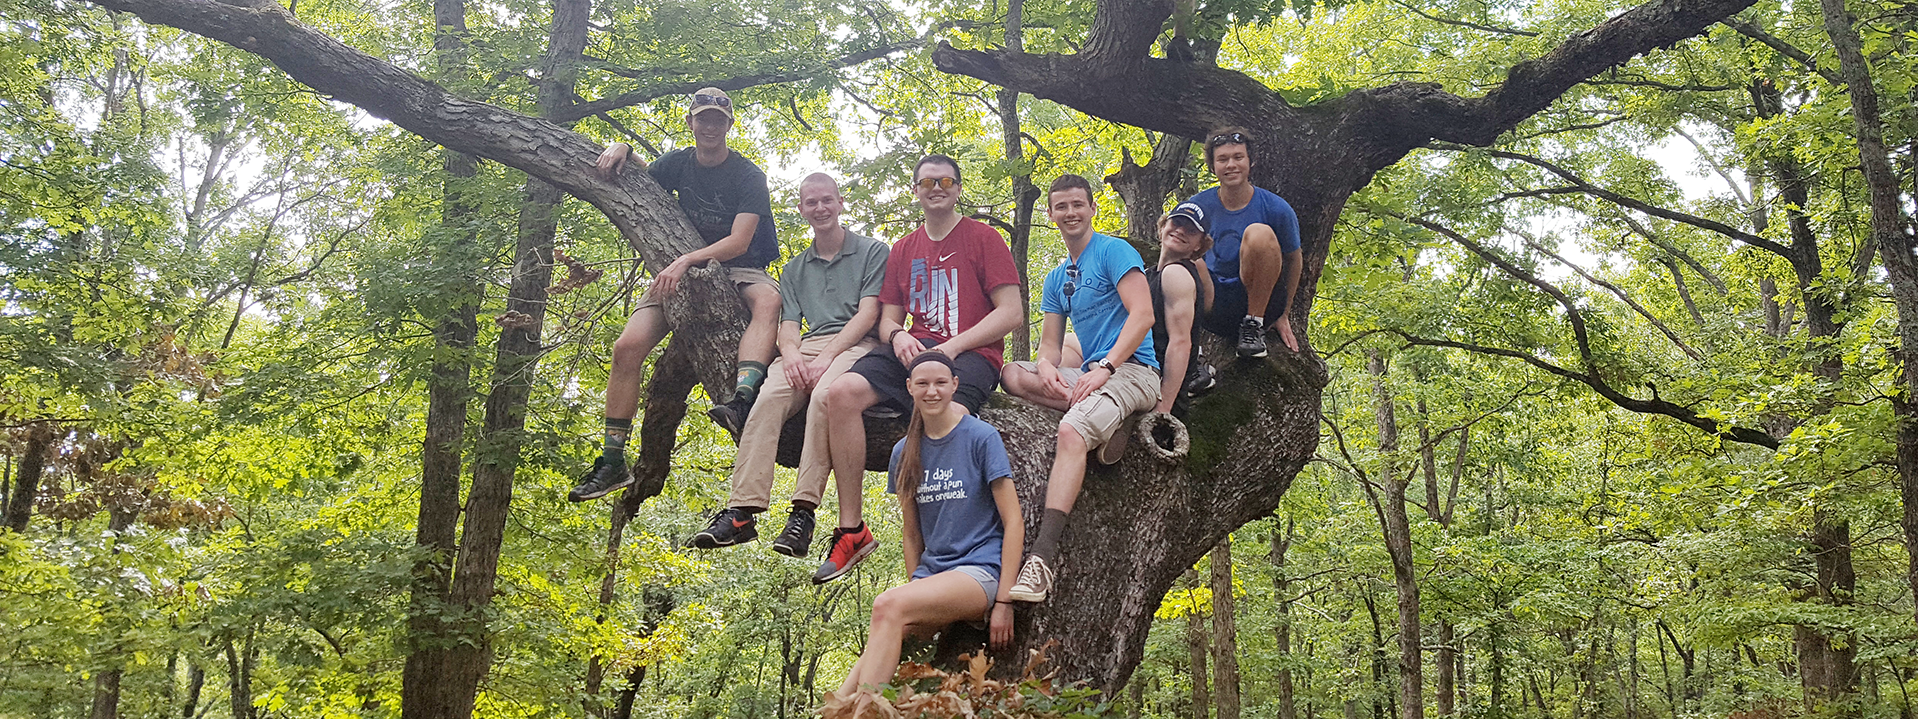 Slideshow - Hiking Tree Group